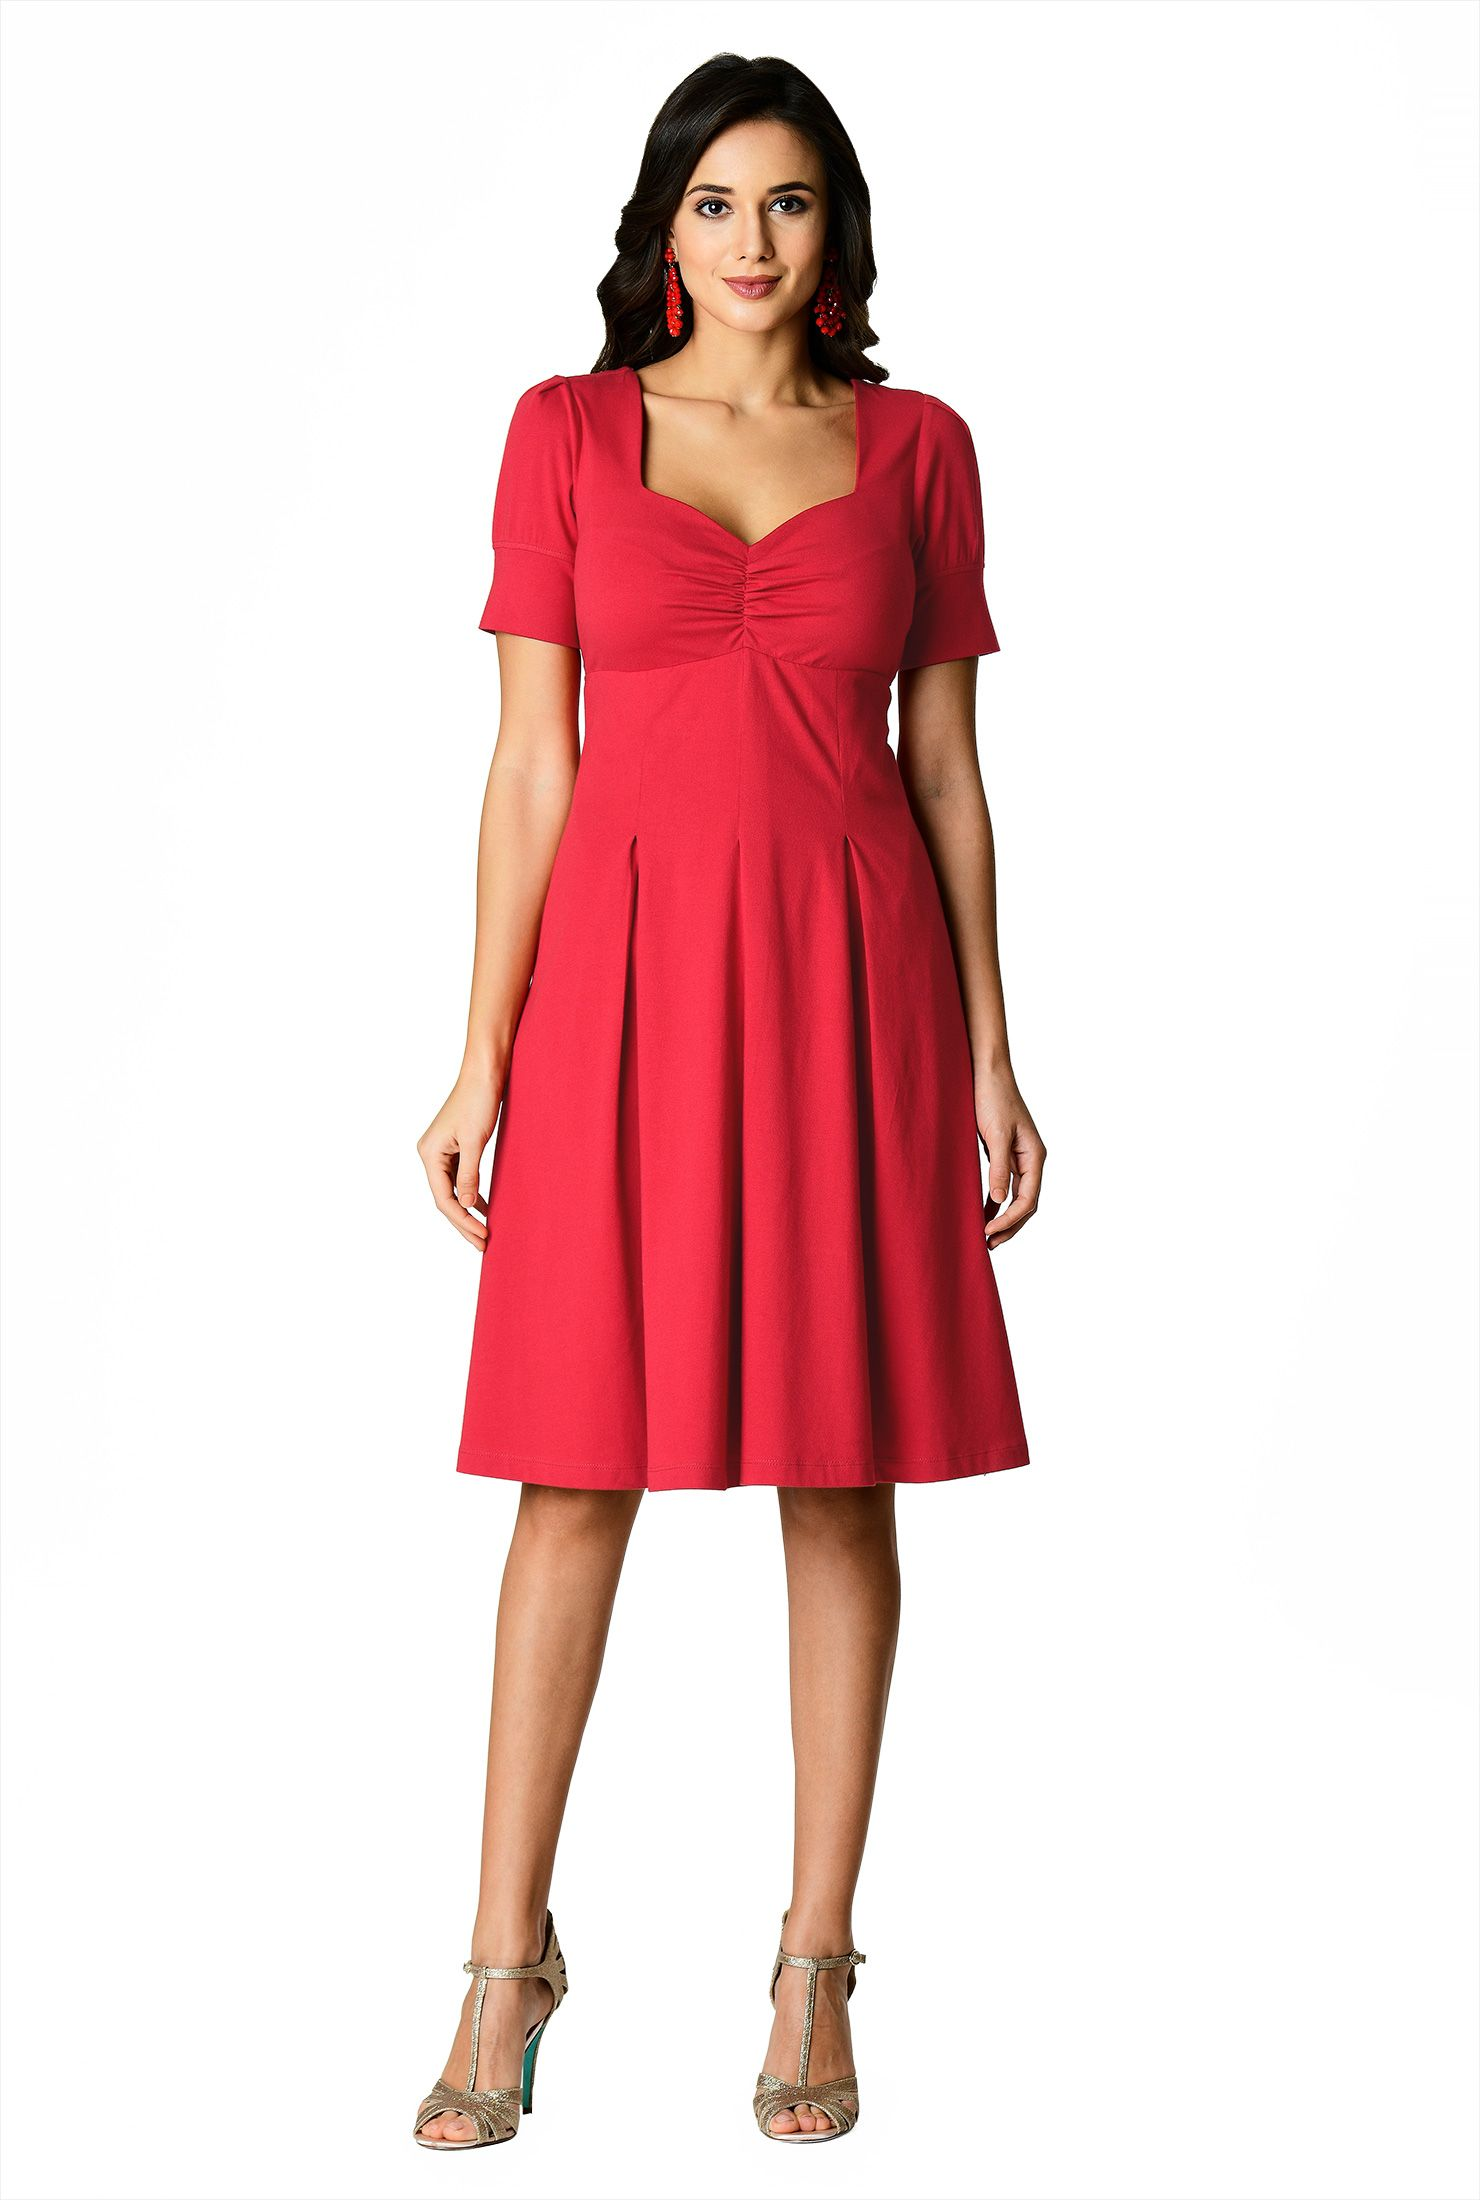 red dress with sleeves knee length